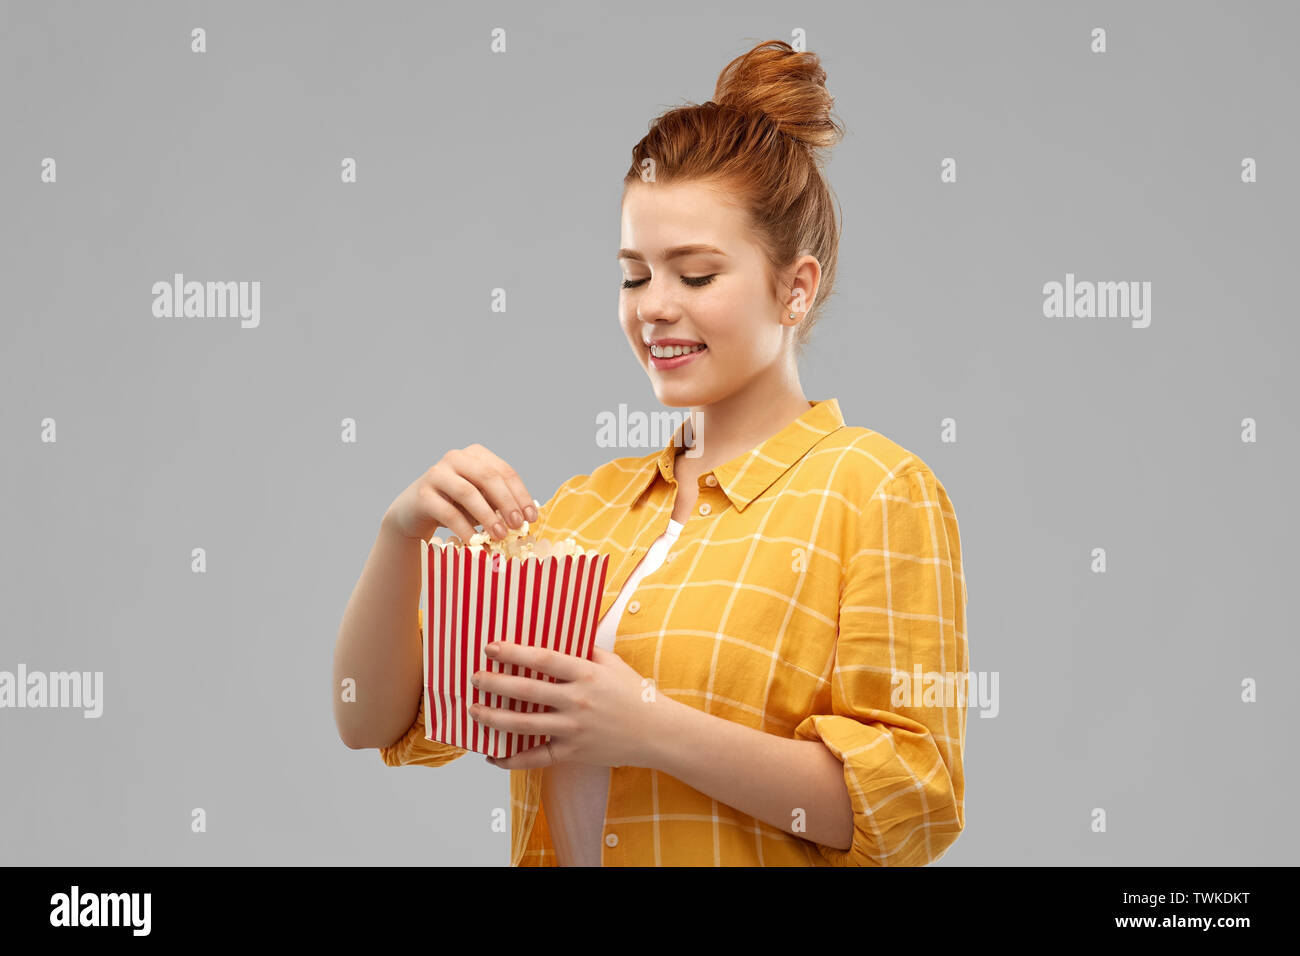 smiling red haired teenage girl eating popcorn - Stock Image